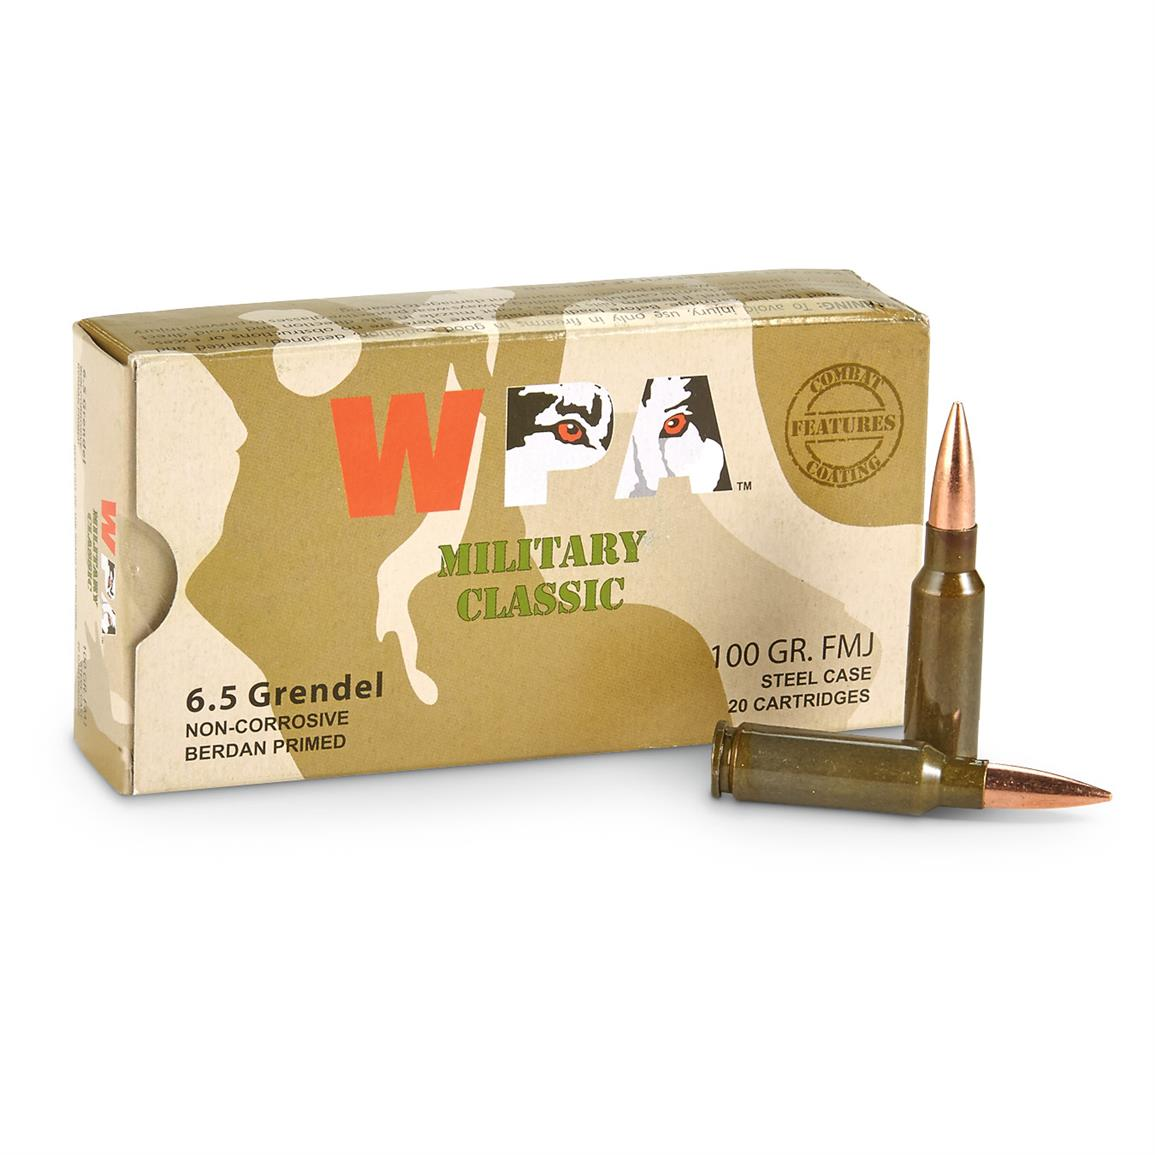 Wolf Military Classic, 6.5 Grendel, FMJ, 100 Grain, 500 Rounds